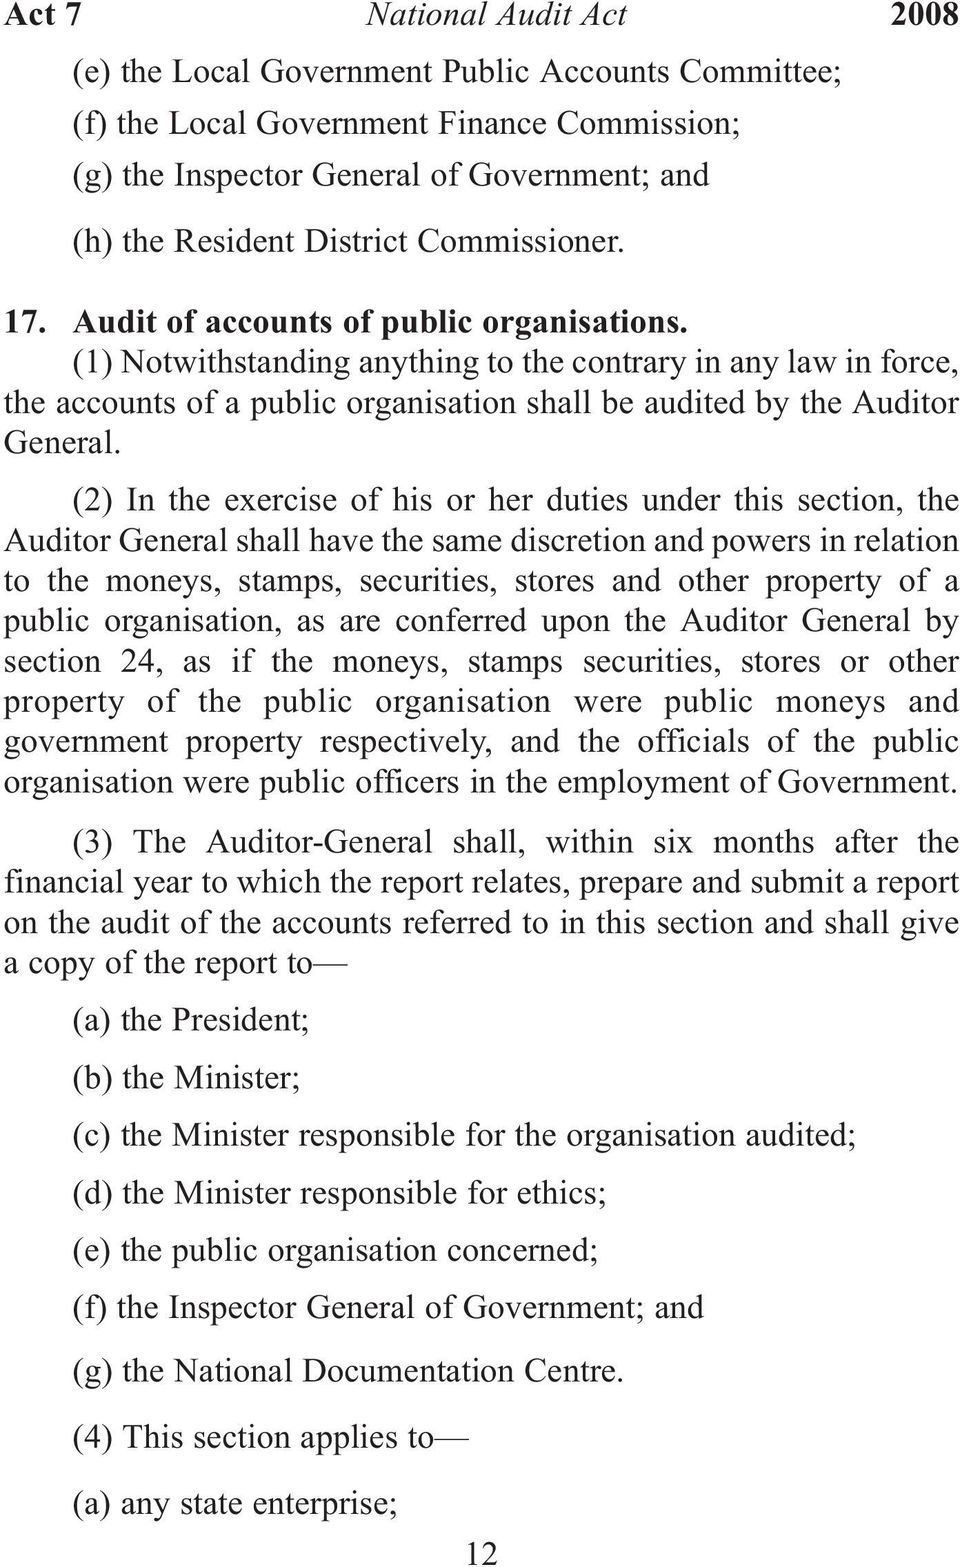 (2) In the exercise of his or her duties under this section, the Auditor General shall have the same discretion and powers in relation to the moneys, stamps, securities, stores and other property of